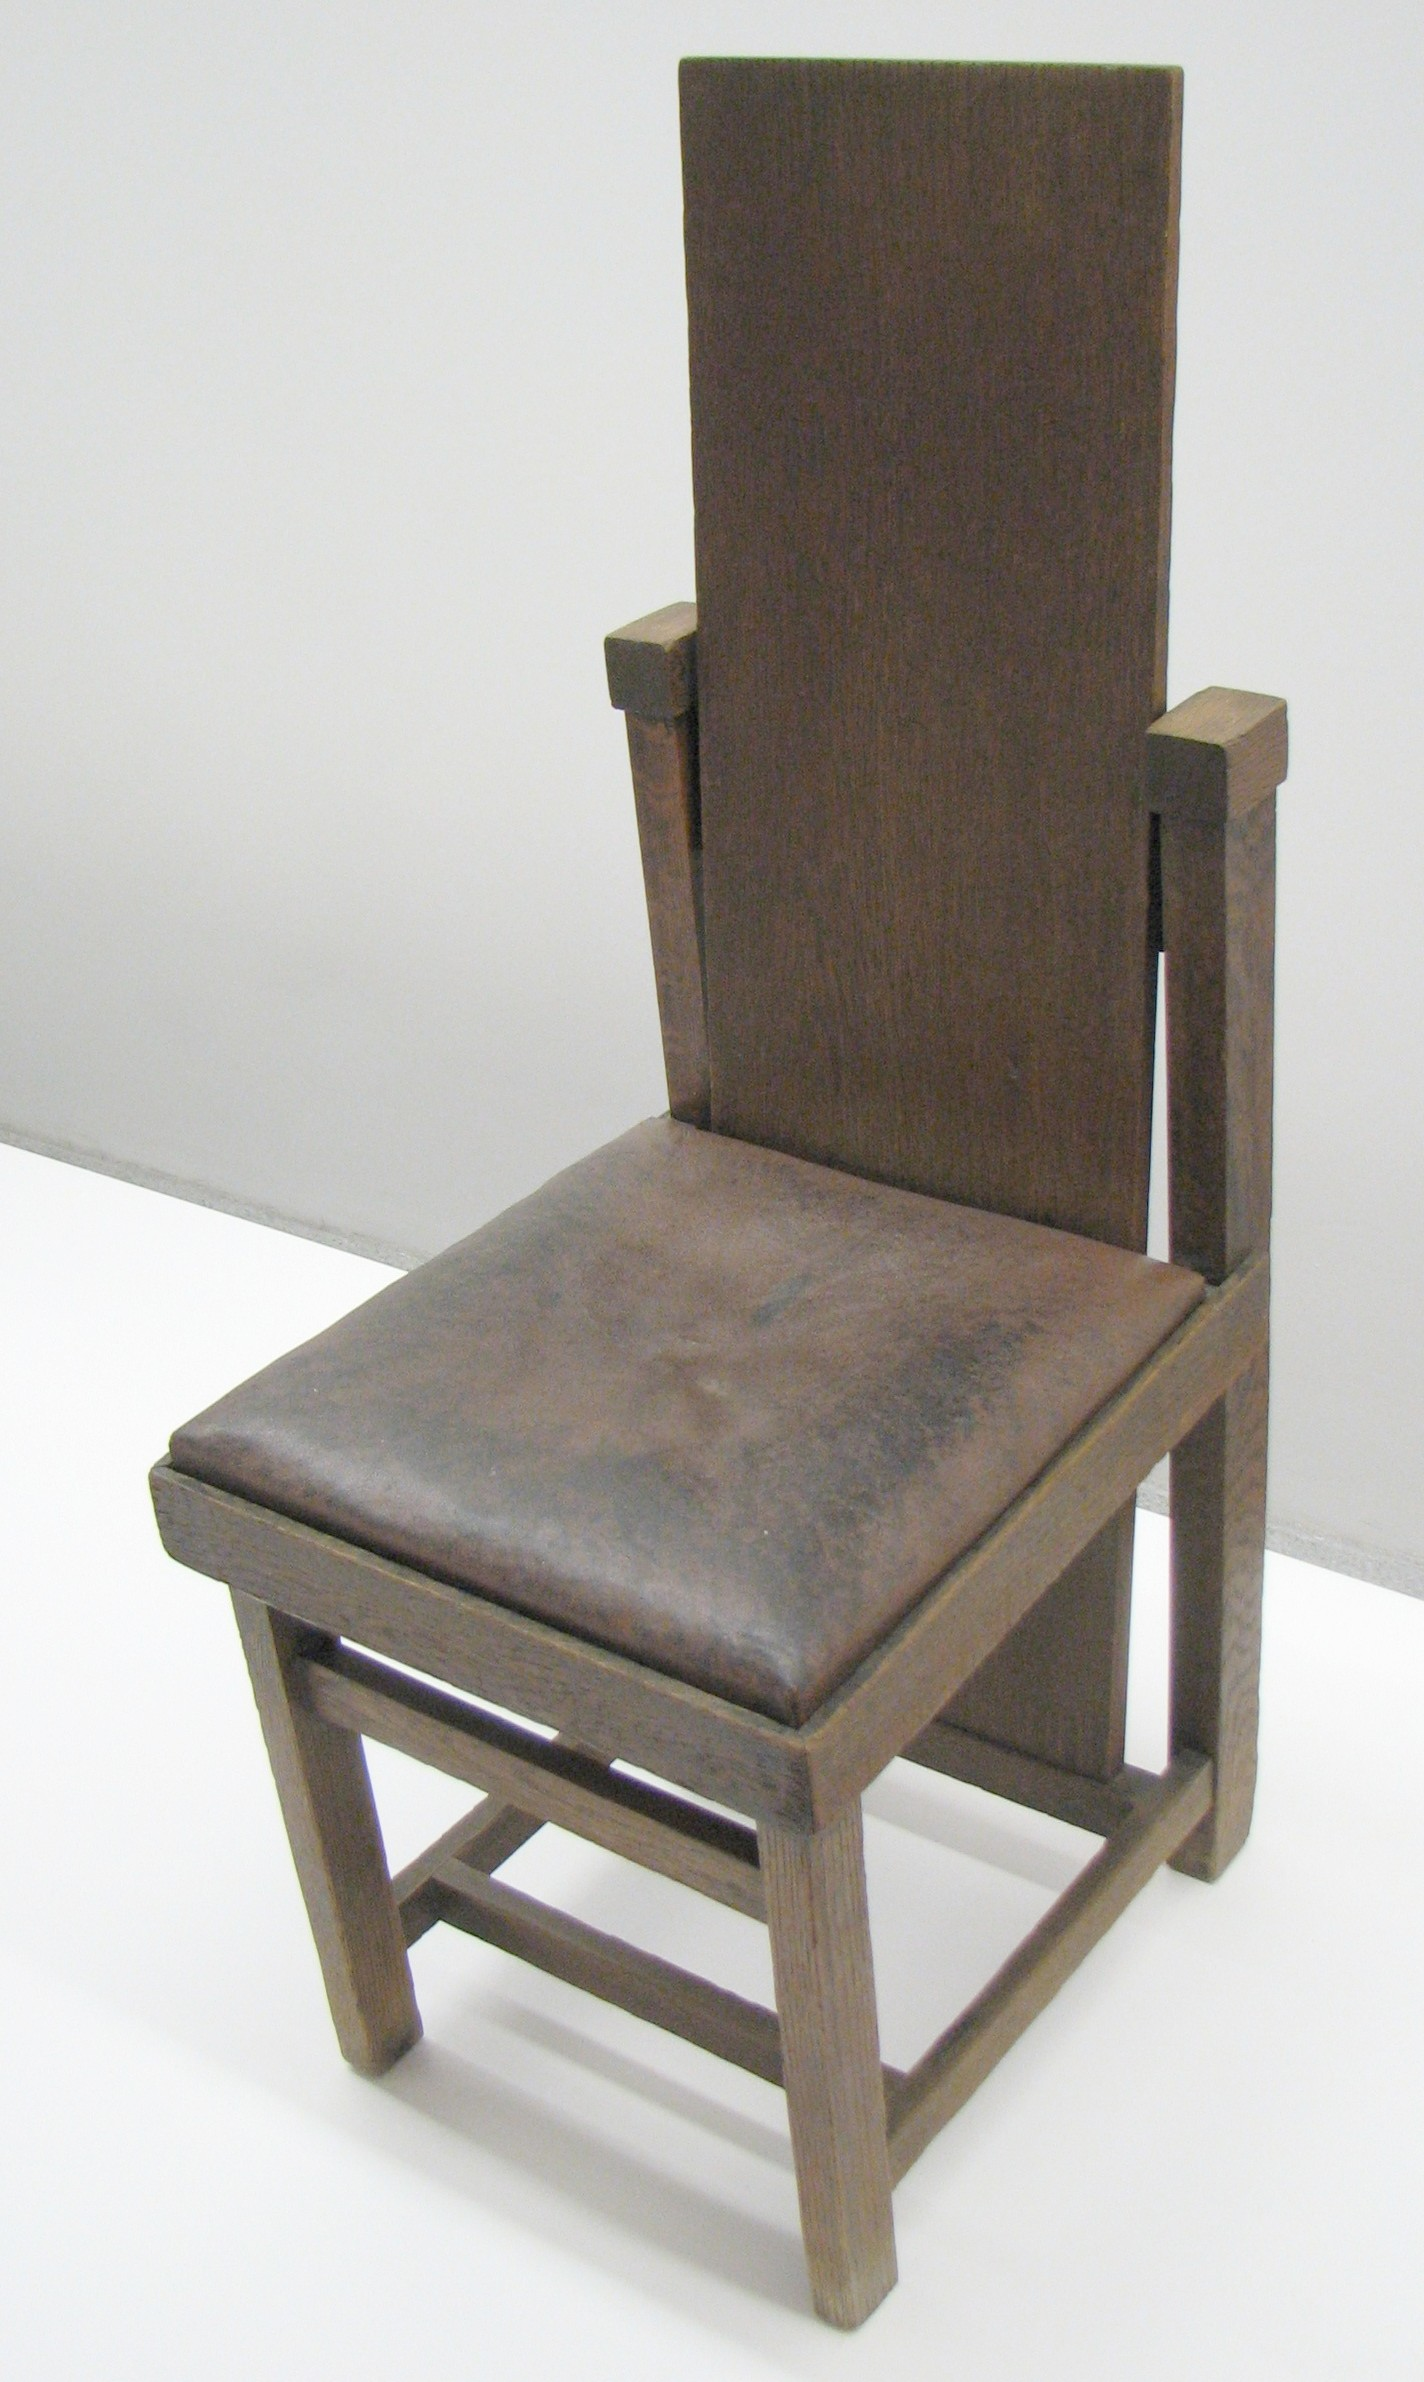 Design history - development of the modern chair - Core77.com